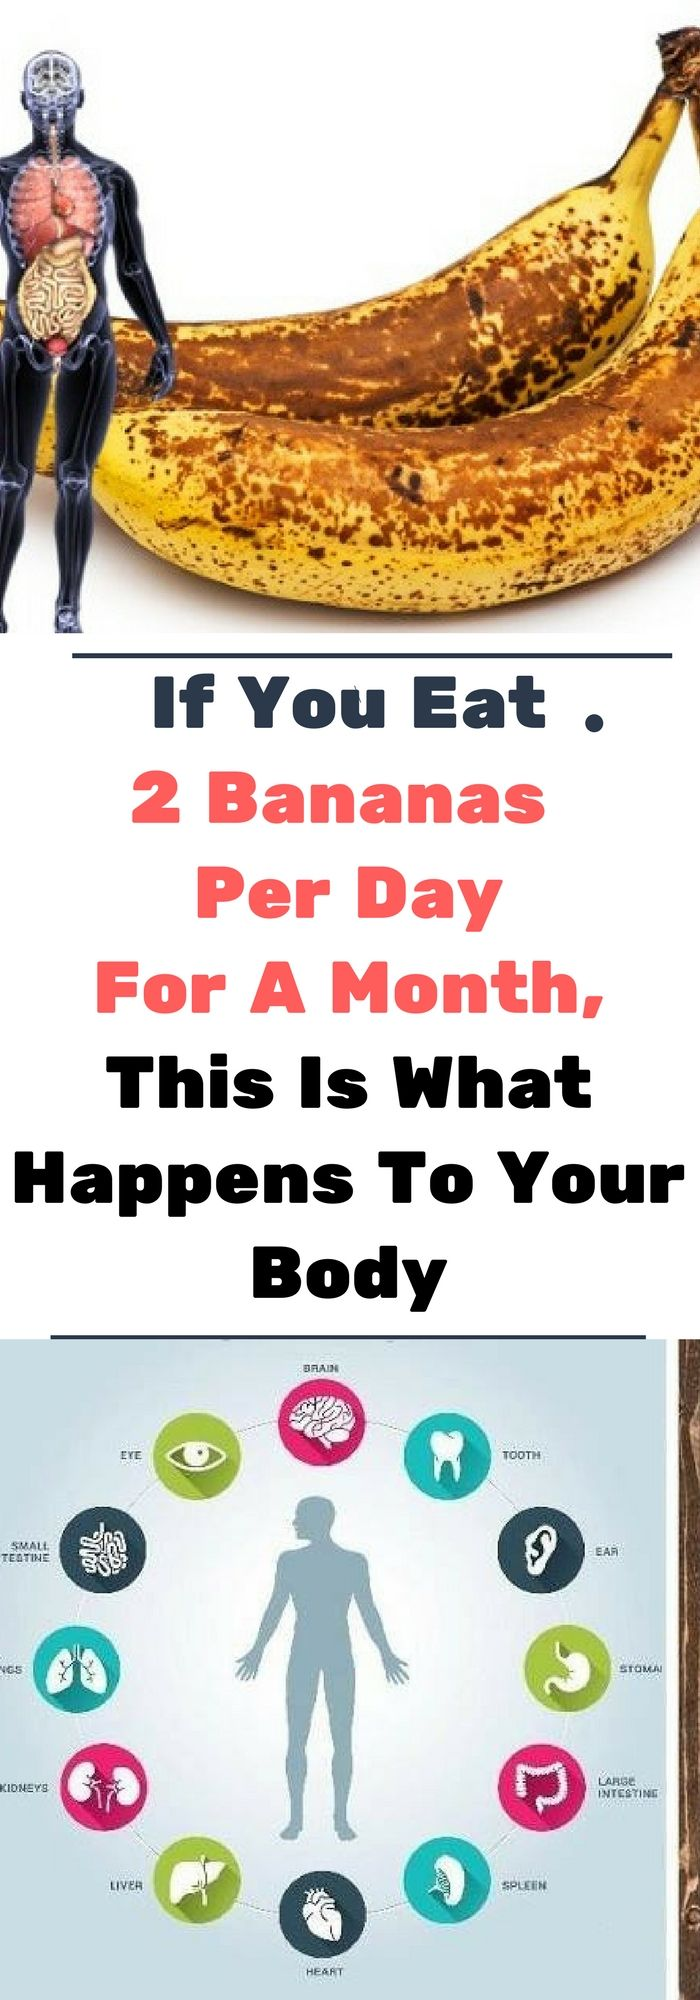 If You Eat 2 Bananas Per Day For A Month, This Is What Happens To Your Body..!! !!!